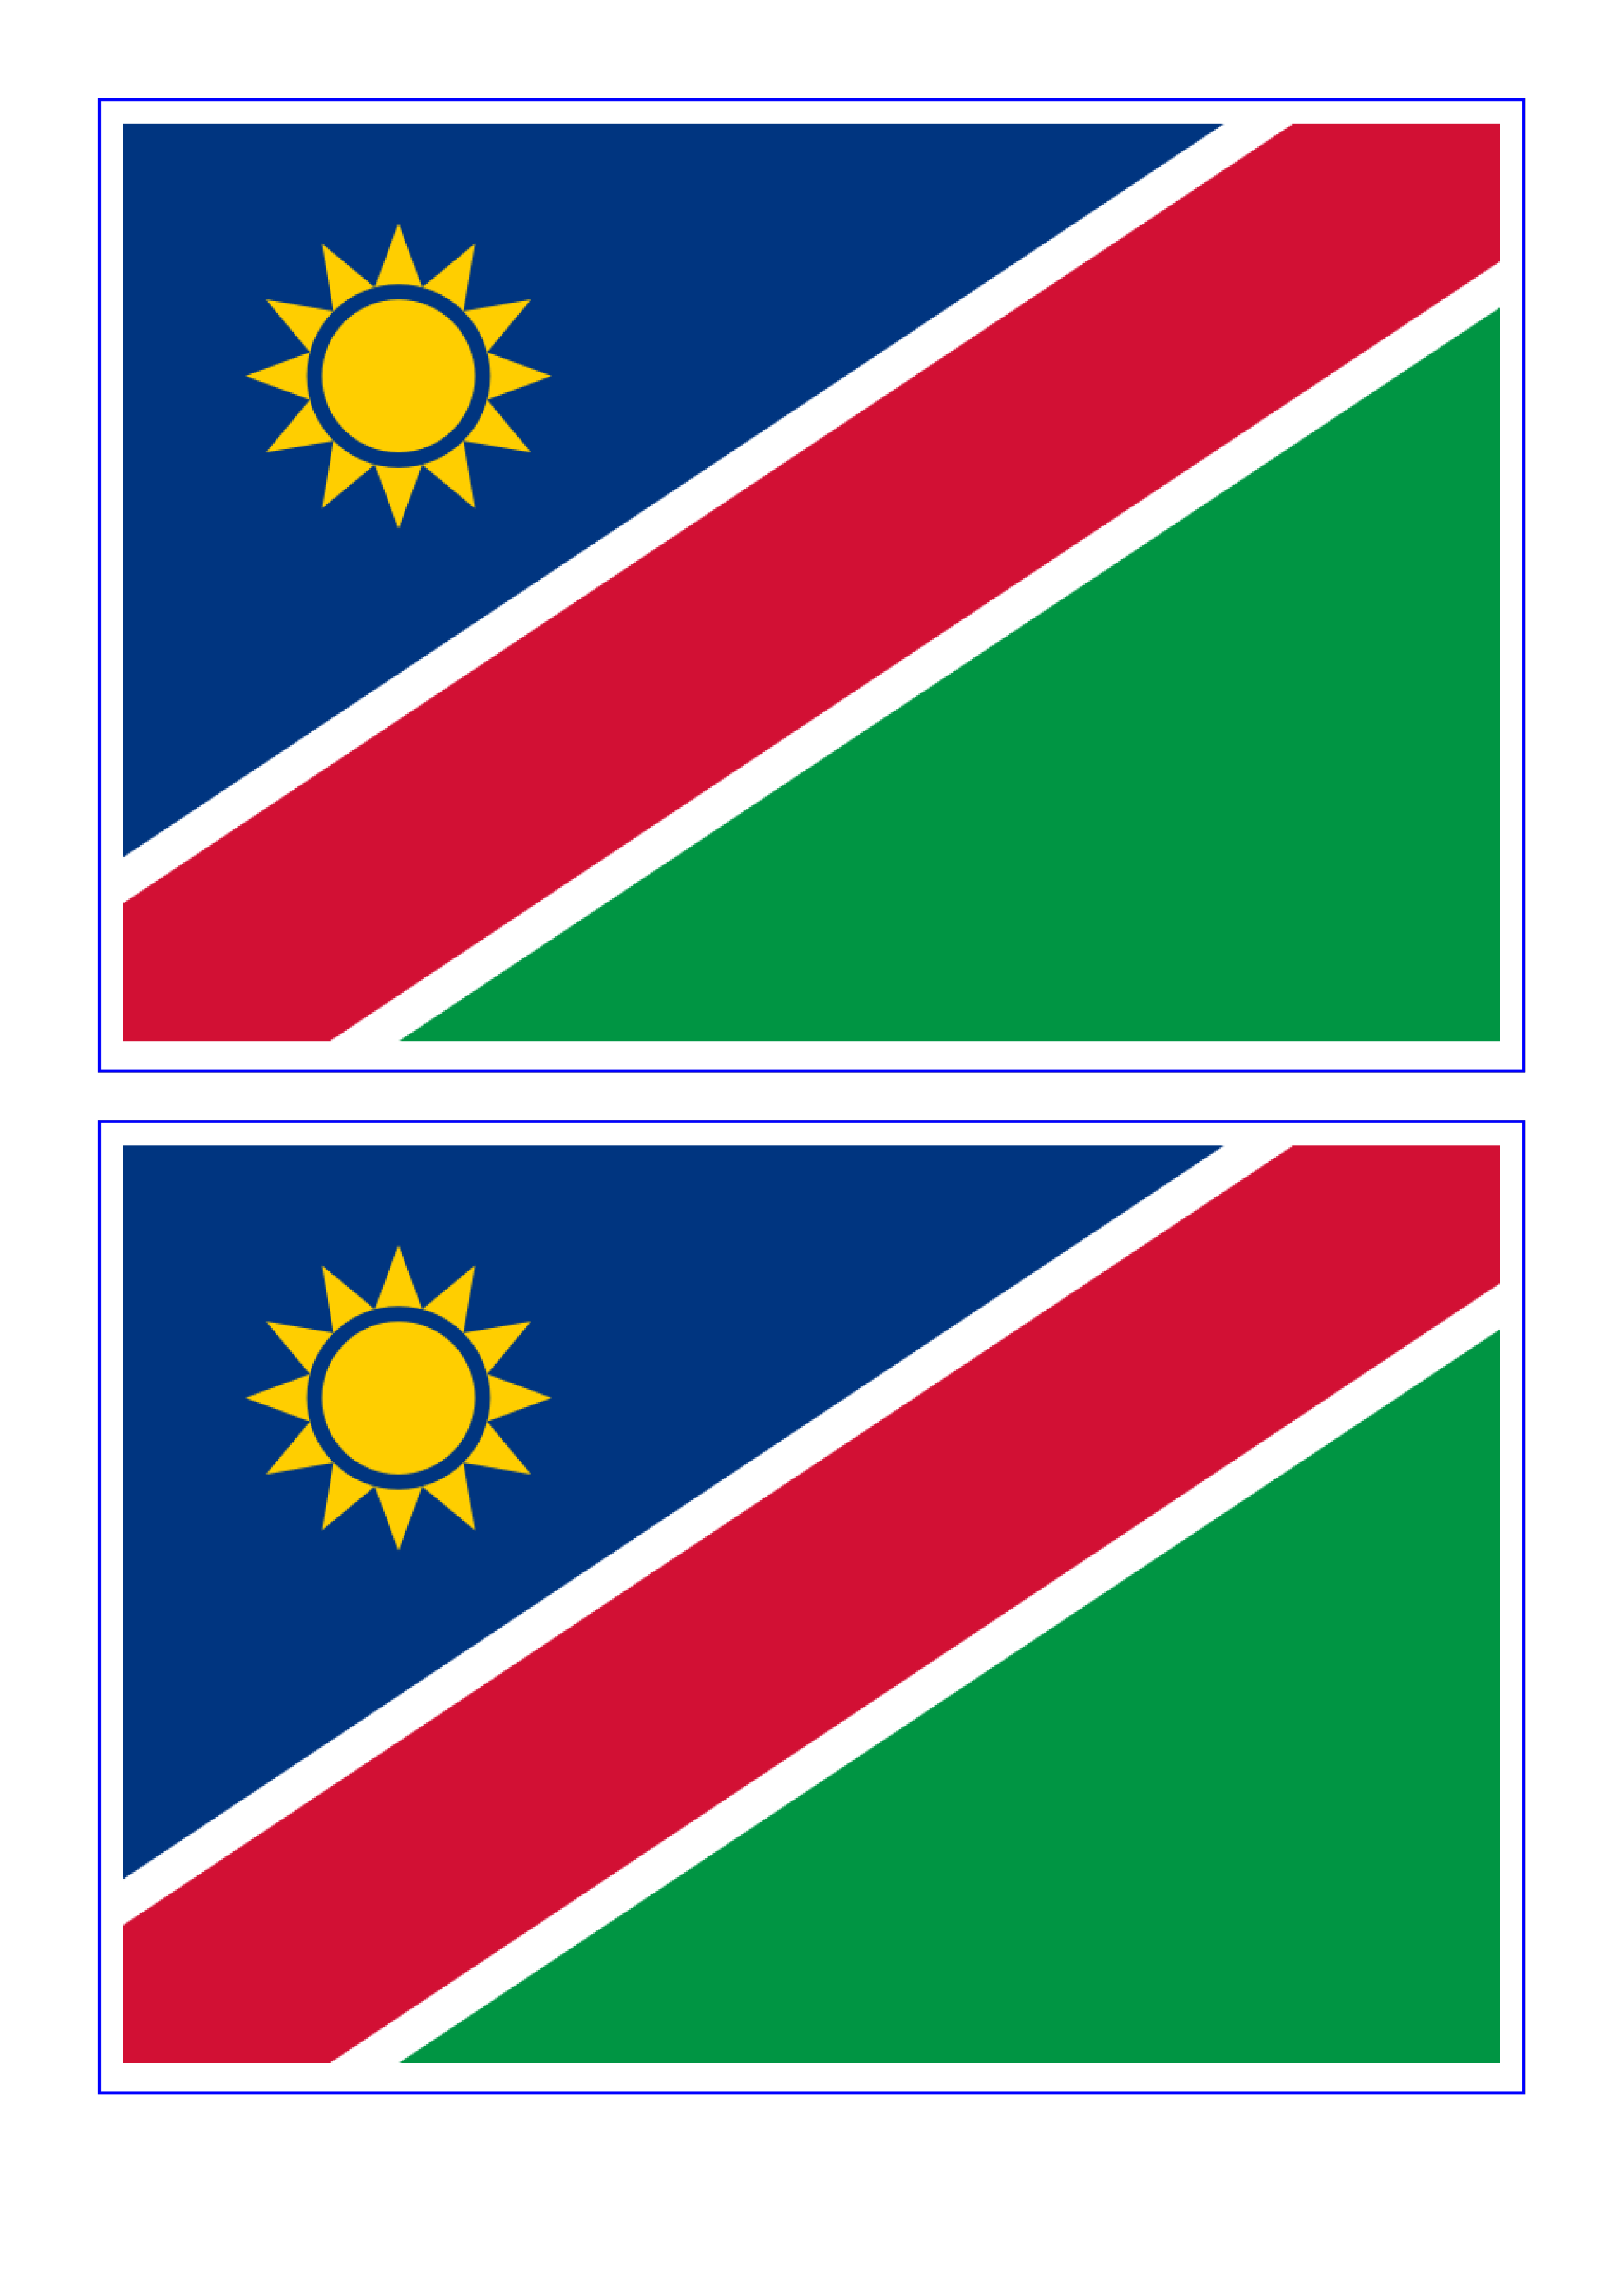 Namibia flag download this. Flags clipart printable